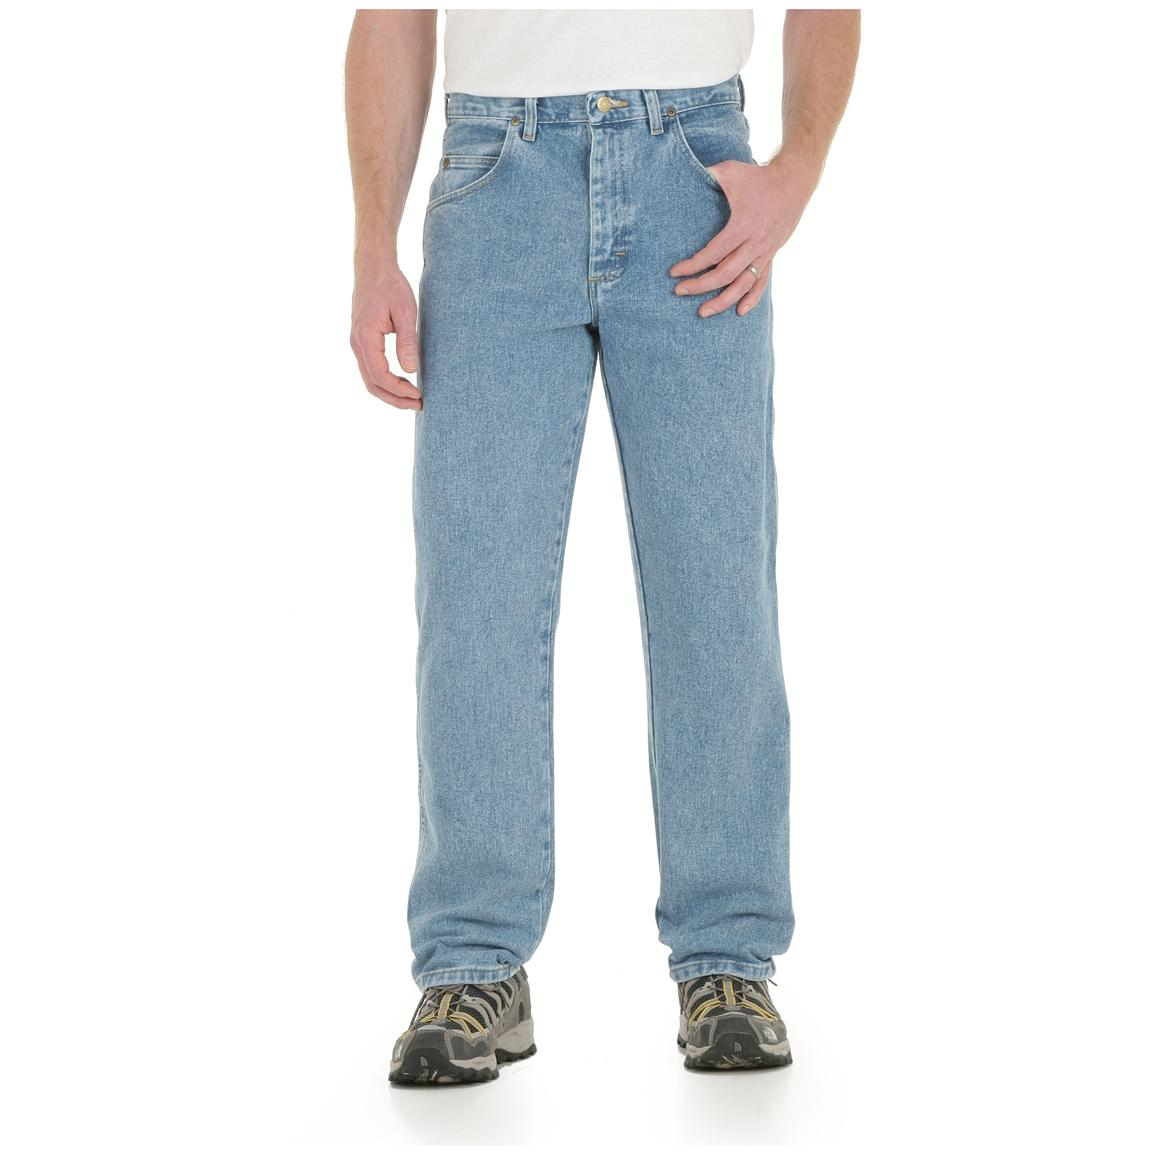 Men's Wrangler® Rugged Wear® Relaxed Fit Jeans